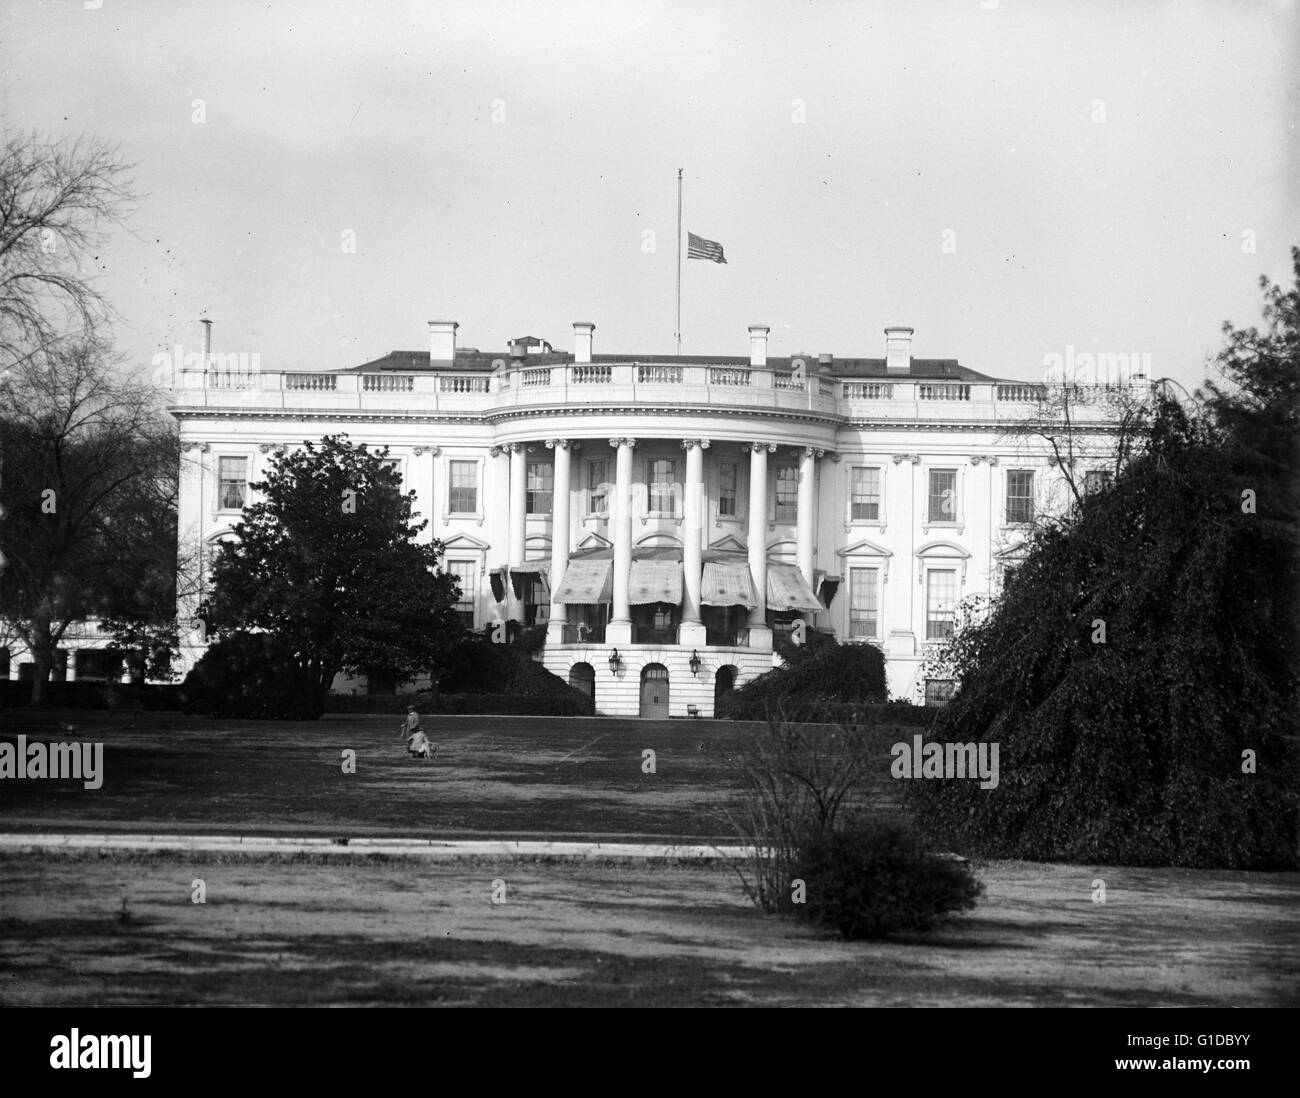 White House flag at half-mast. The flag on the White House is flown at half-mast except upon the occasion of the - Stock Image